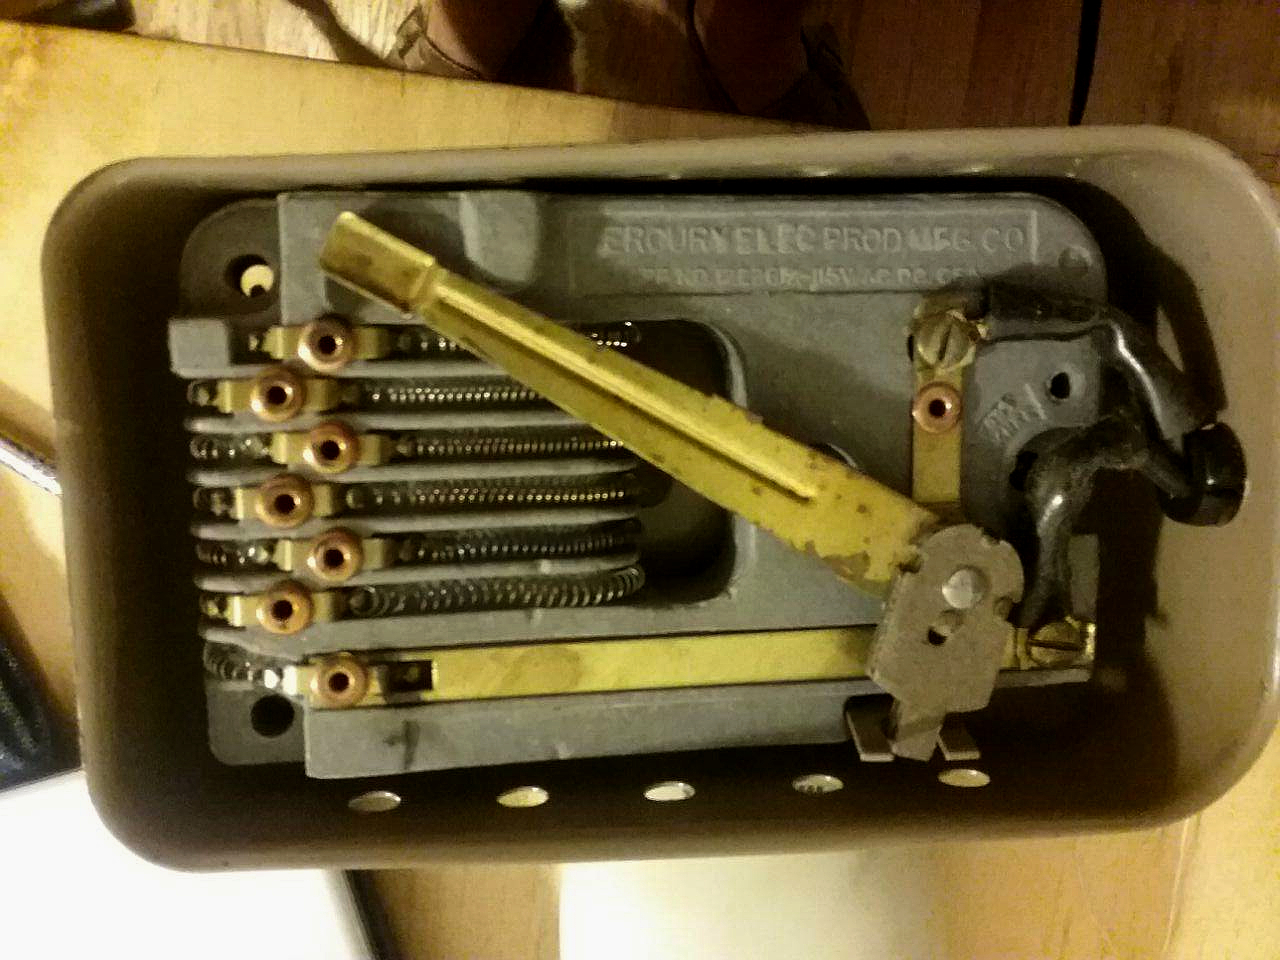 Imperial 535 sewing machine pedal. Some springs had come loose, but after replacement did not sew any better. Photo 2 by Don Tai